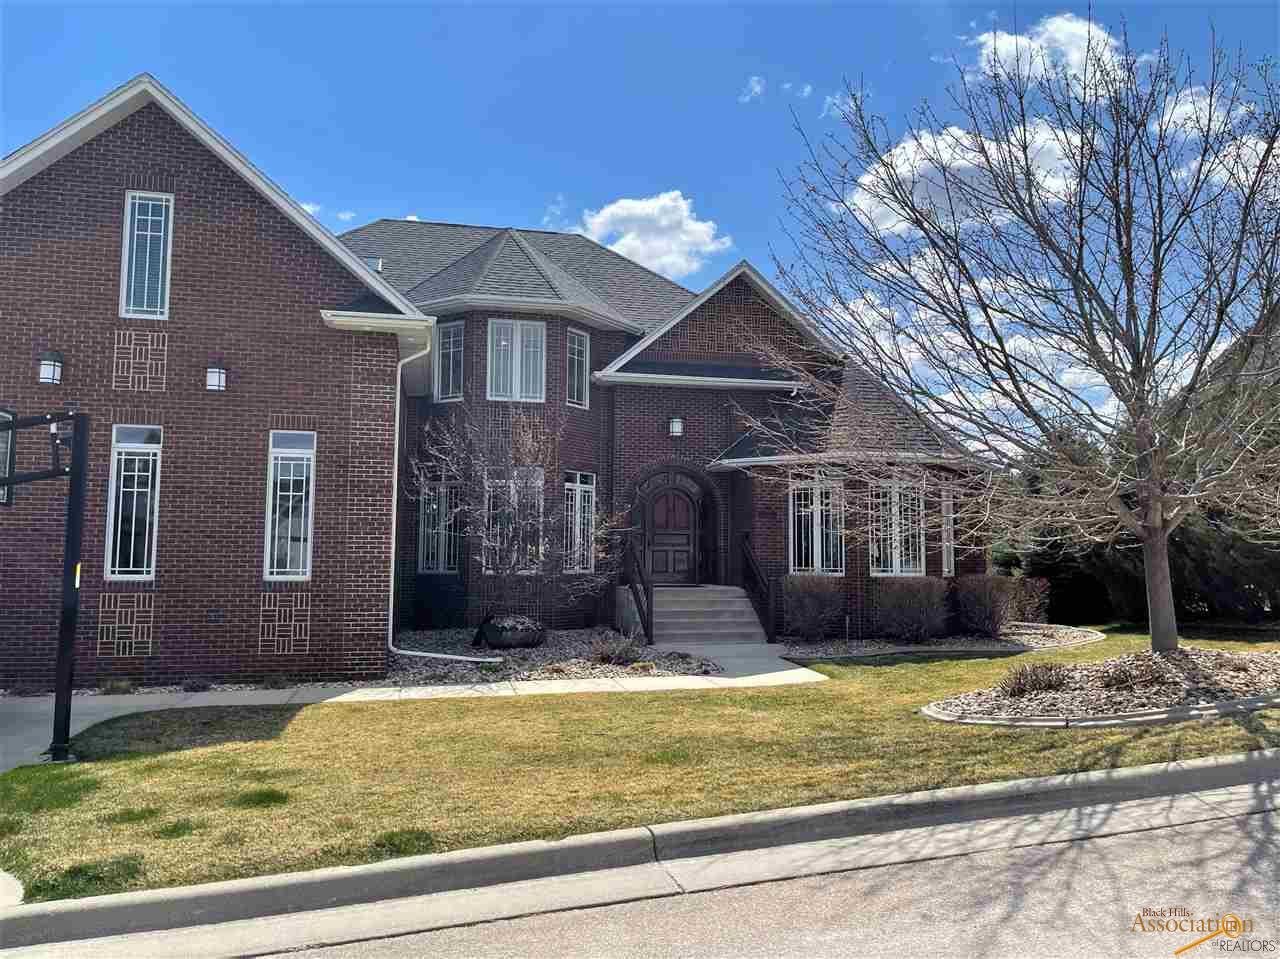 STUNNING HOME with VIEWS & PRIVACY! Listed by Jennifer Landguth, Hegg Realtors, Inc. 6053818273. This high quality, all brick home with gorgeous views has it all including 6 bedroom suites, a formal dining room, billiard room, 2 story family room with fireplace, a main level laundry/mudroom & 1/2 bath near the large kitchen & nook with views & deck access. There is also a main level master bedroom suite featuring a sitting area, tray ceilings, French doors to the deck, a large bathroom w/ tub & steam shower, private toilet, double sinks & a large walk in closet. The open stairway leads to the upper level complete with 3 bedroom suites & bonus room perfect for family times or a quiet office space.  The lower level features high ceilings, a media room, bar with dishwasher, card room, party bath, family room, wine room, 2 bedroom suites & patio access. The 3 car garage has high ceilings perfect for a car lift! So many amenities - a must see!